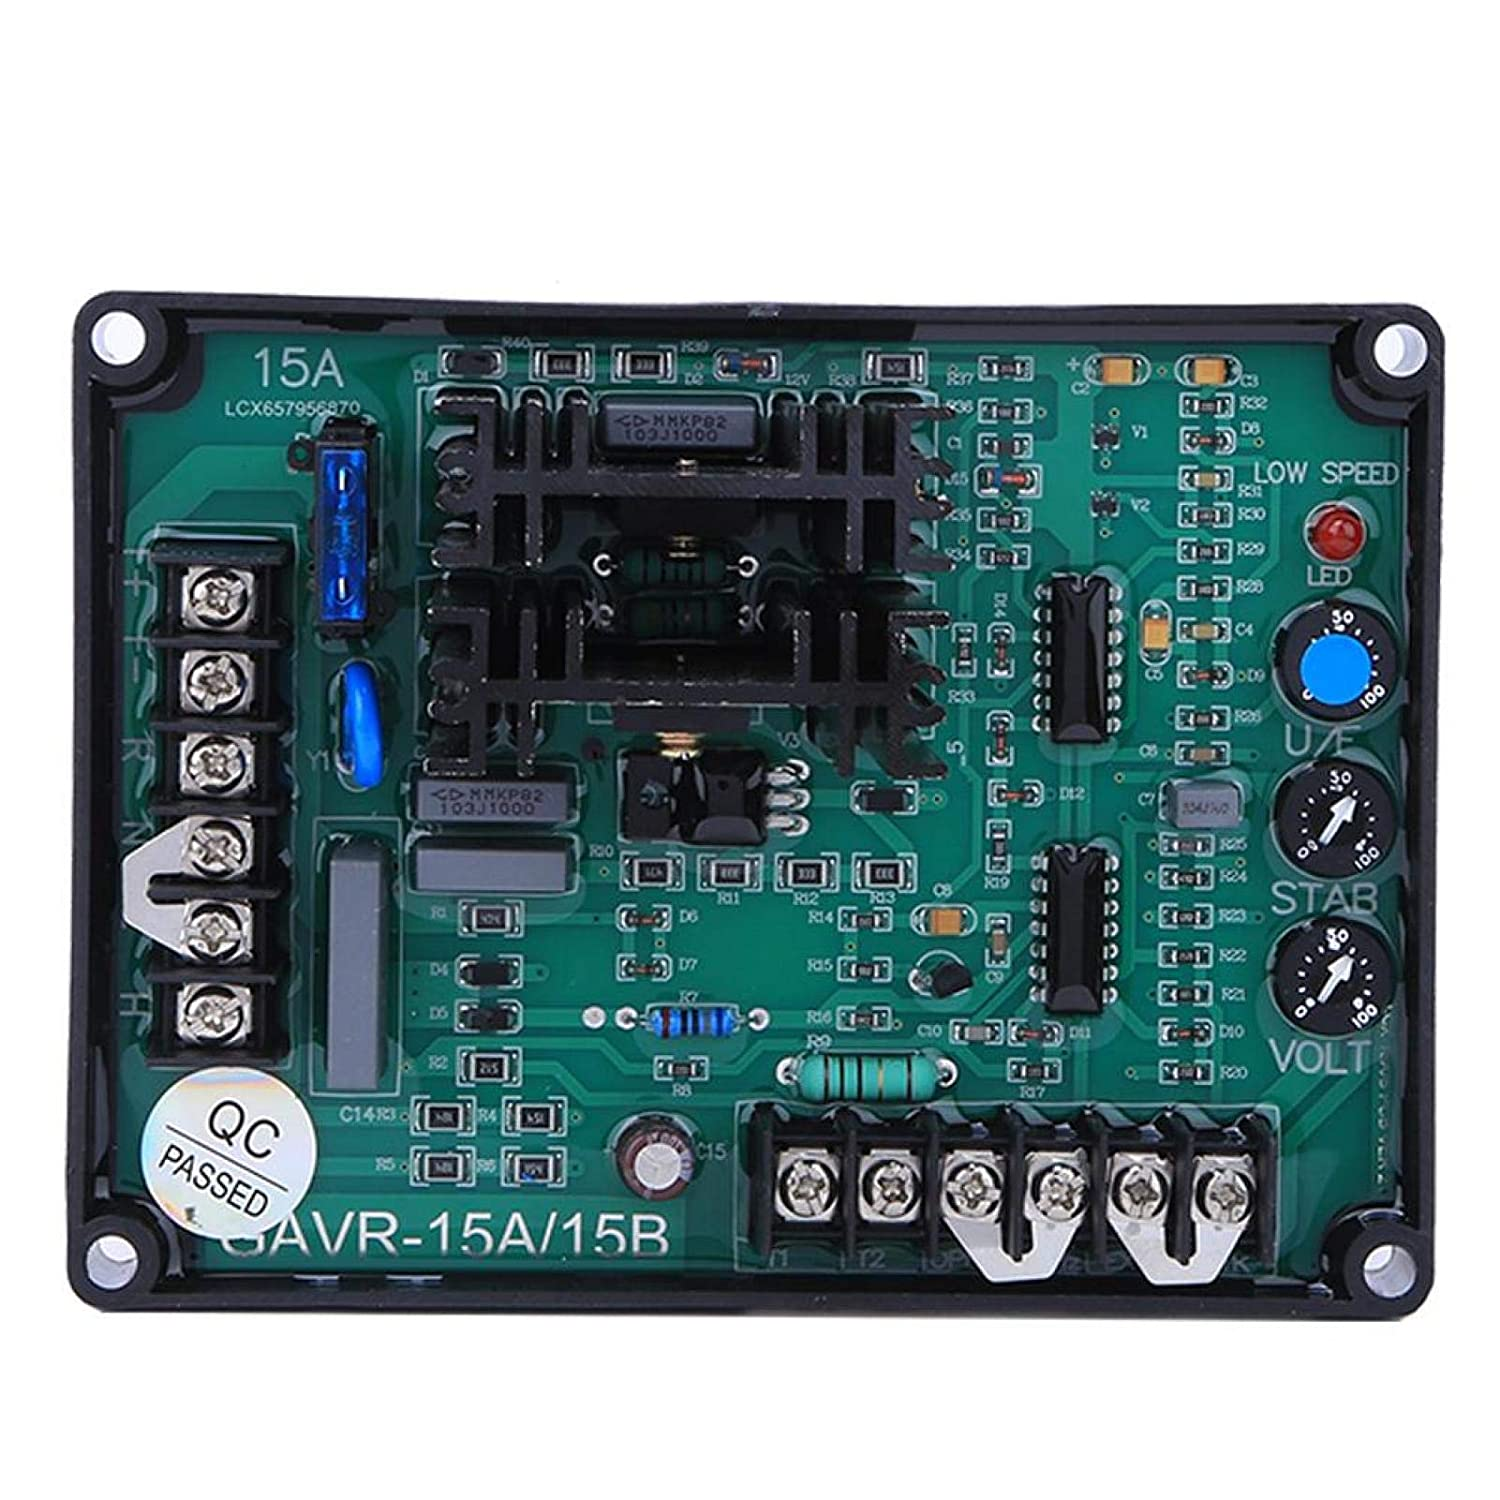 Voltage Regulator Controller Stable Performance Gener Super popular specialty store Ranking TOP3 Automatic